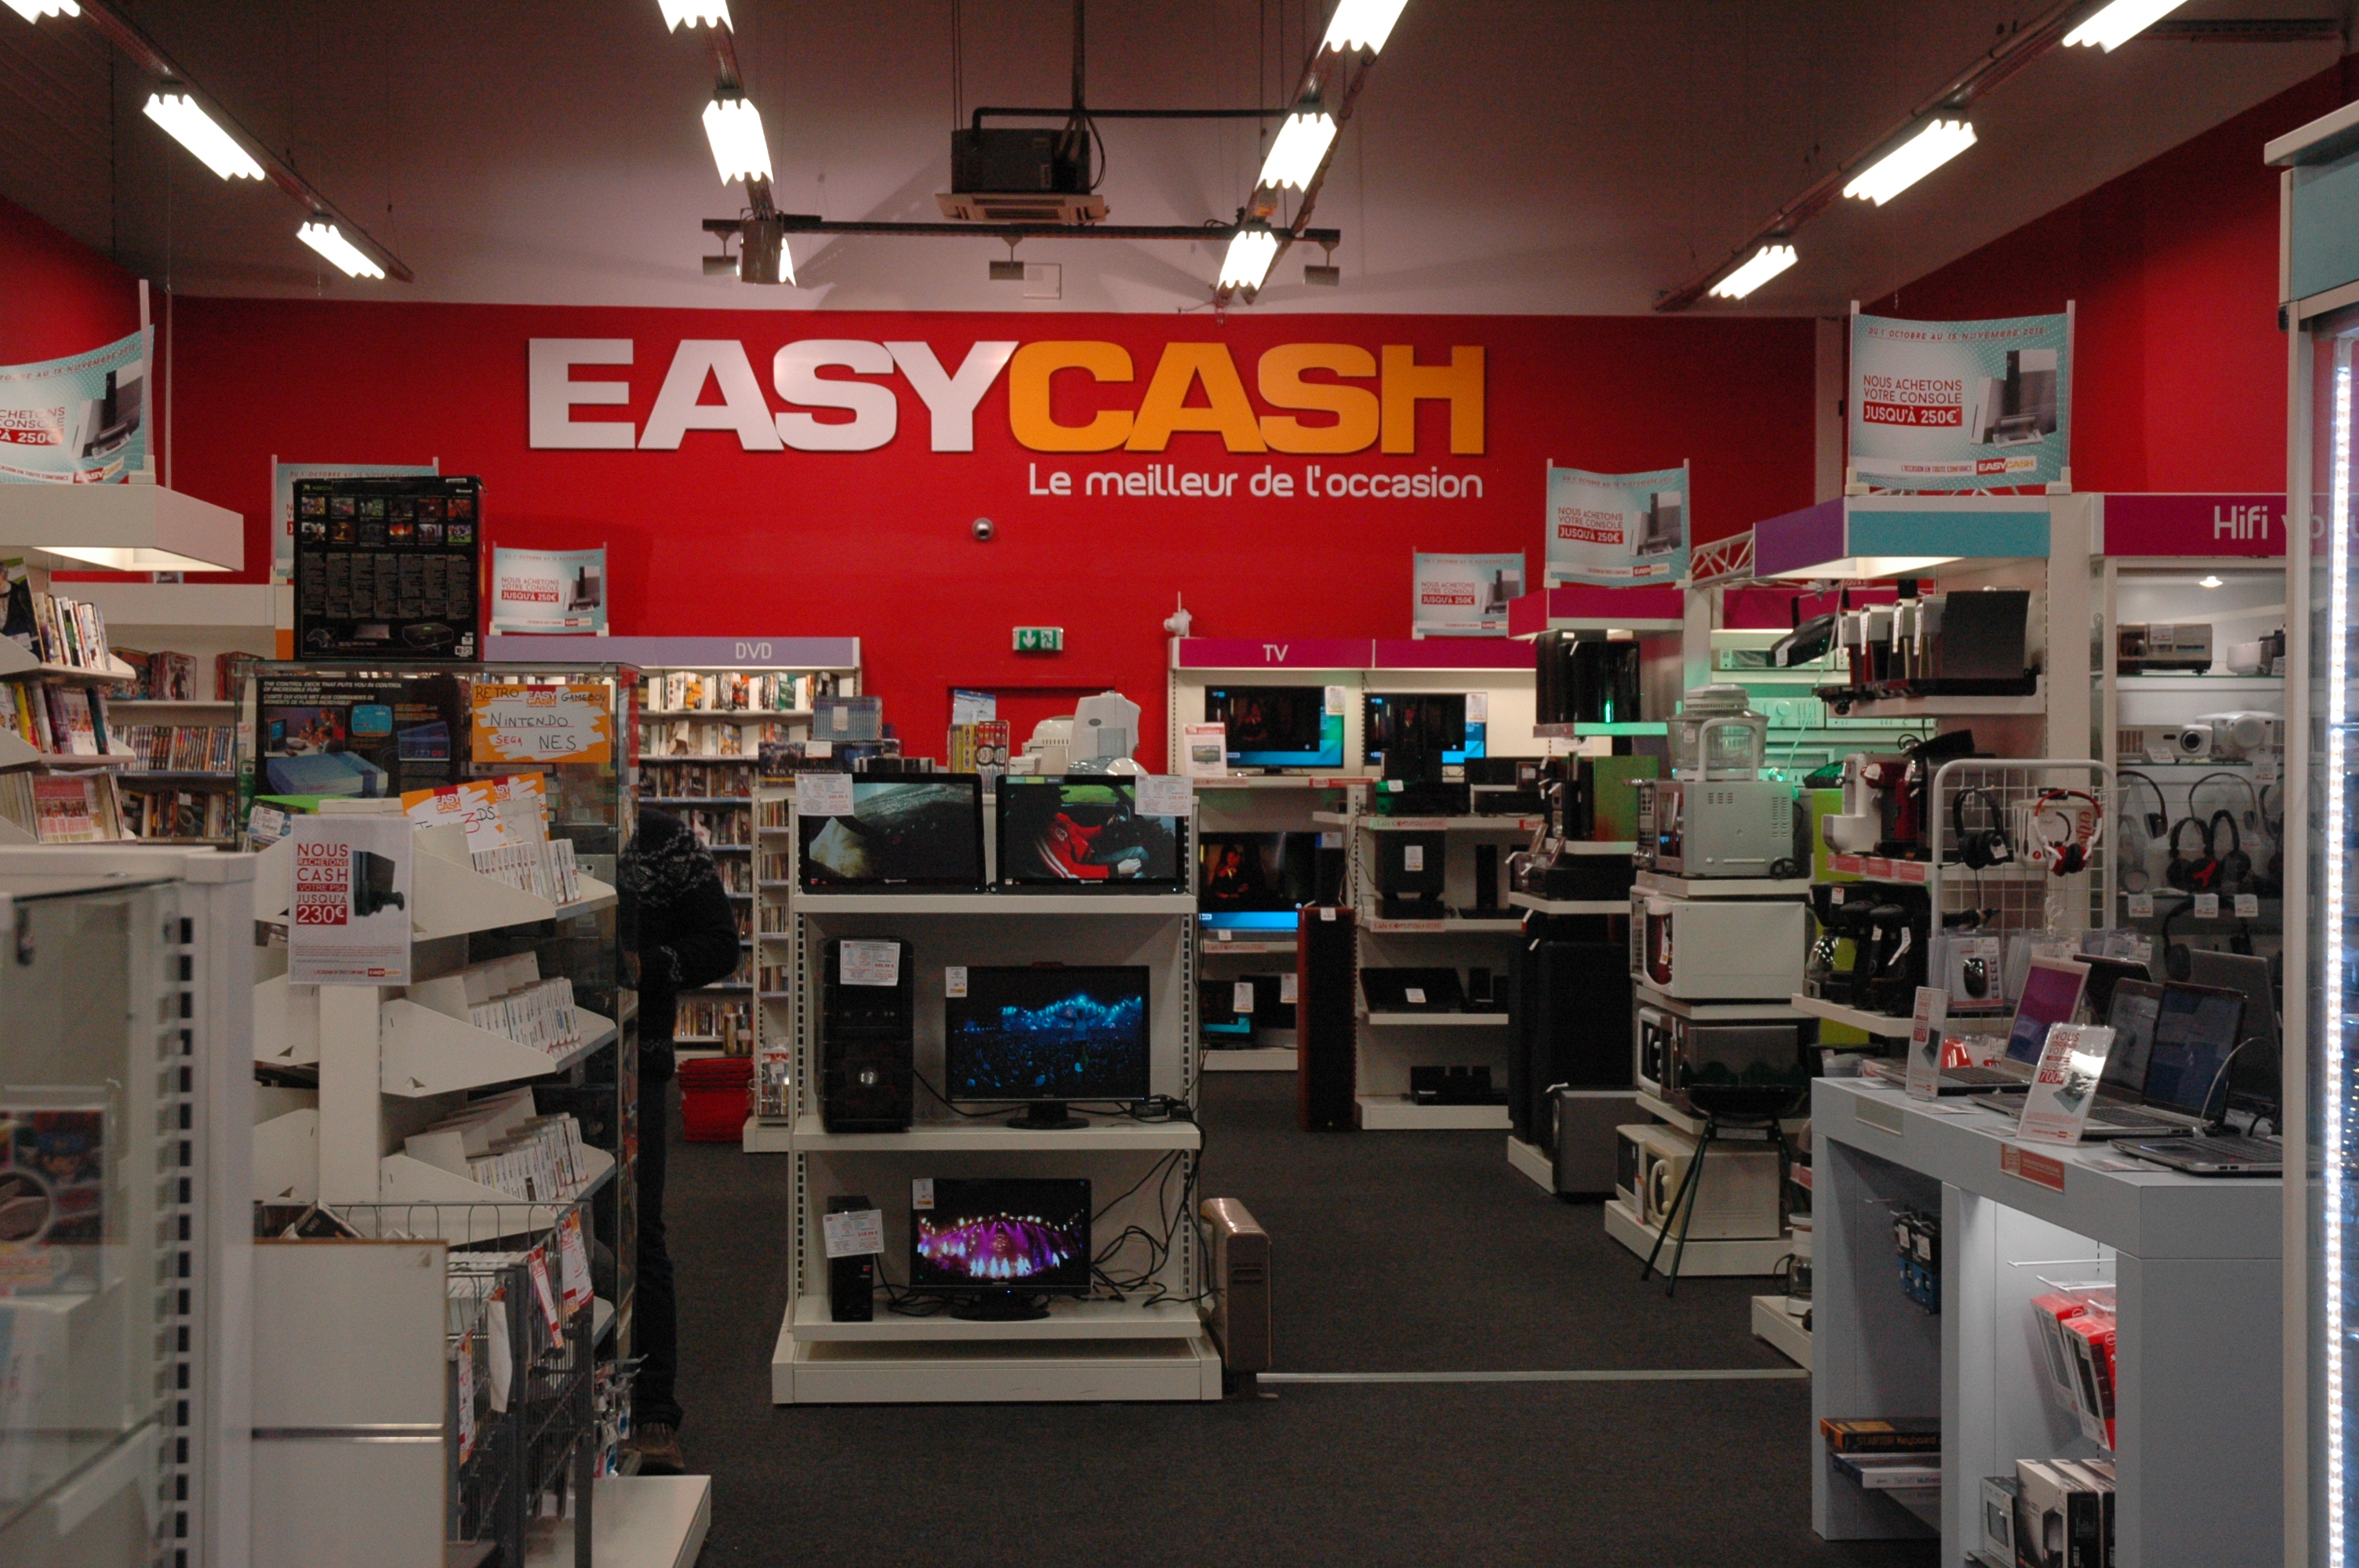 Magasin Console Occasion Easy Cash Montpellier Les Occasions Easy Cash Bons Plans Pas